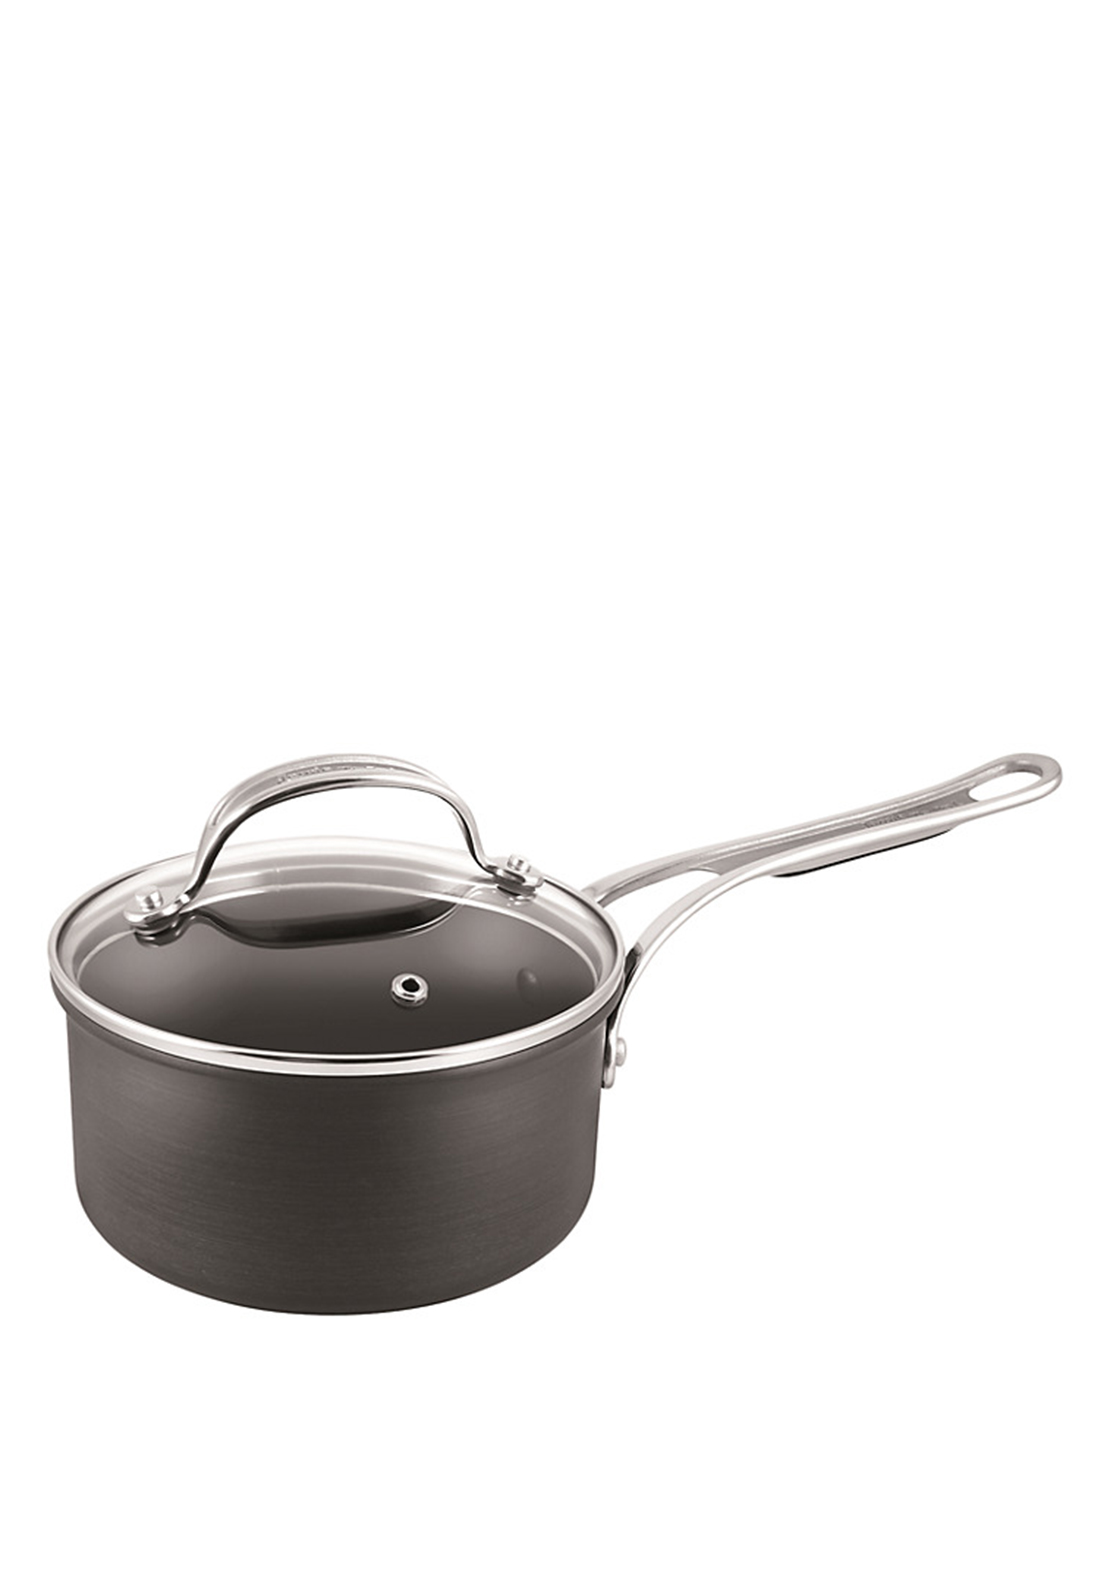 Jamie Oliver Professional Hard-Anodised Saucepan with Lid 16cm